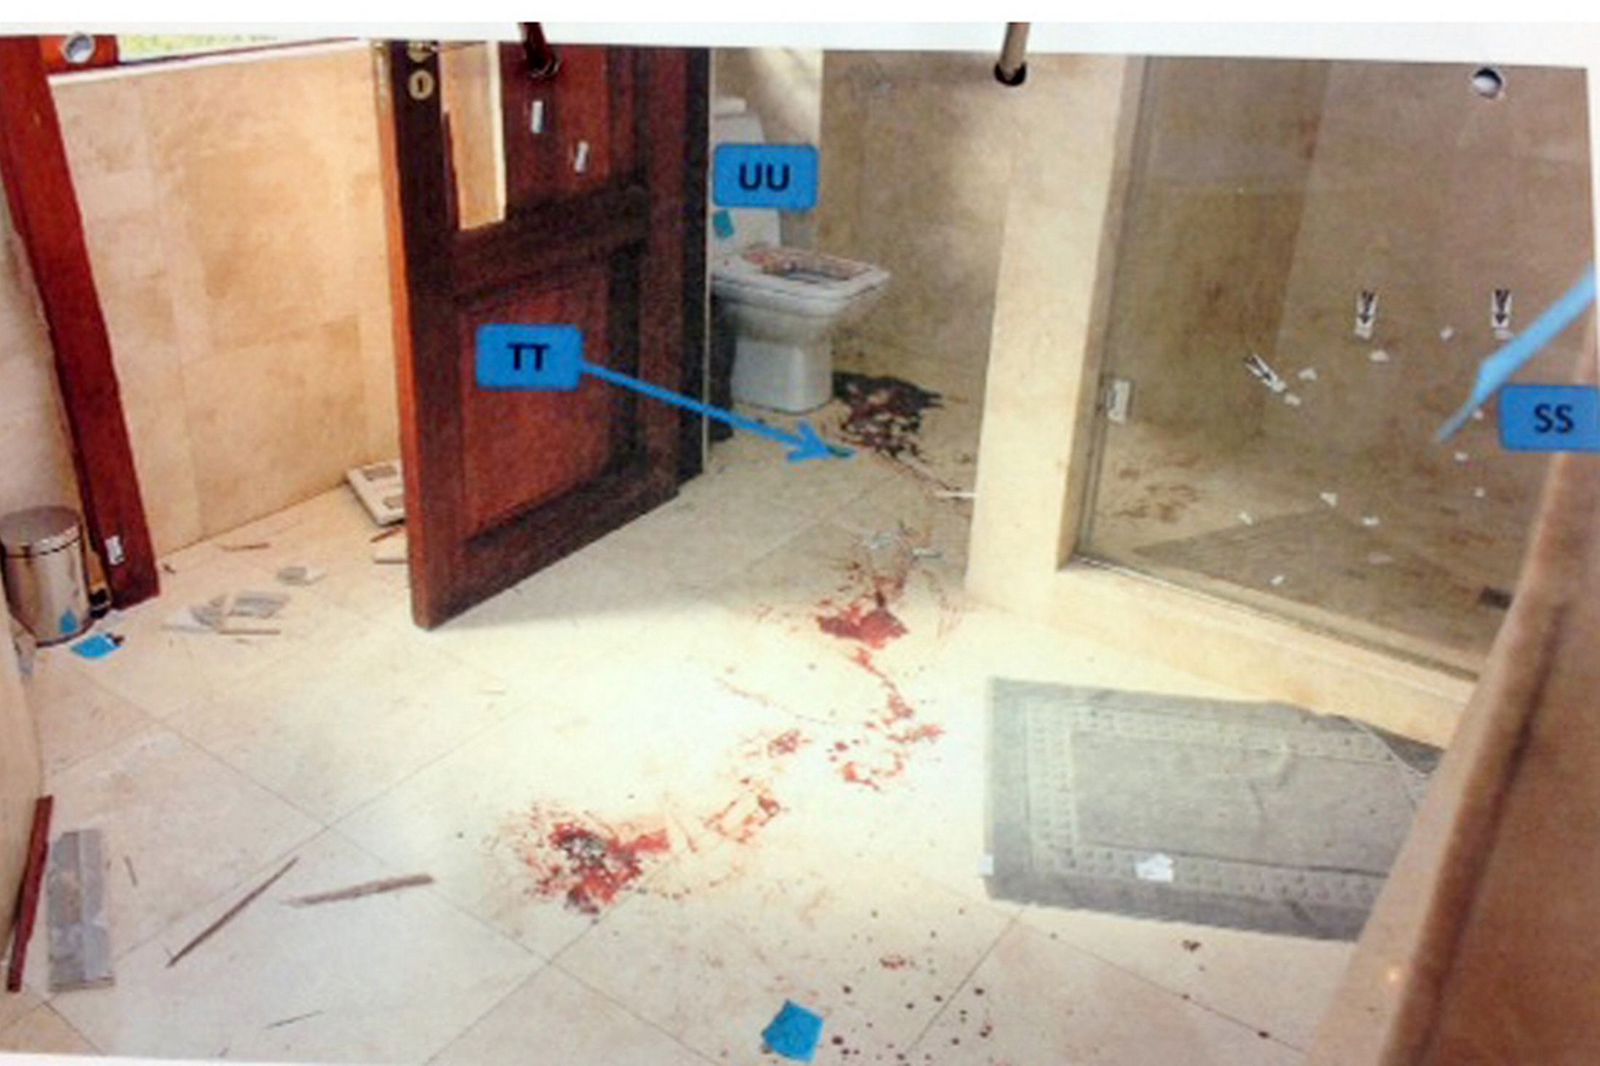 shocking photos emerge of oscar pistorius crime scene